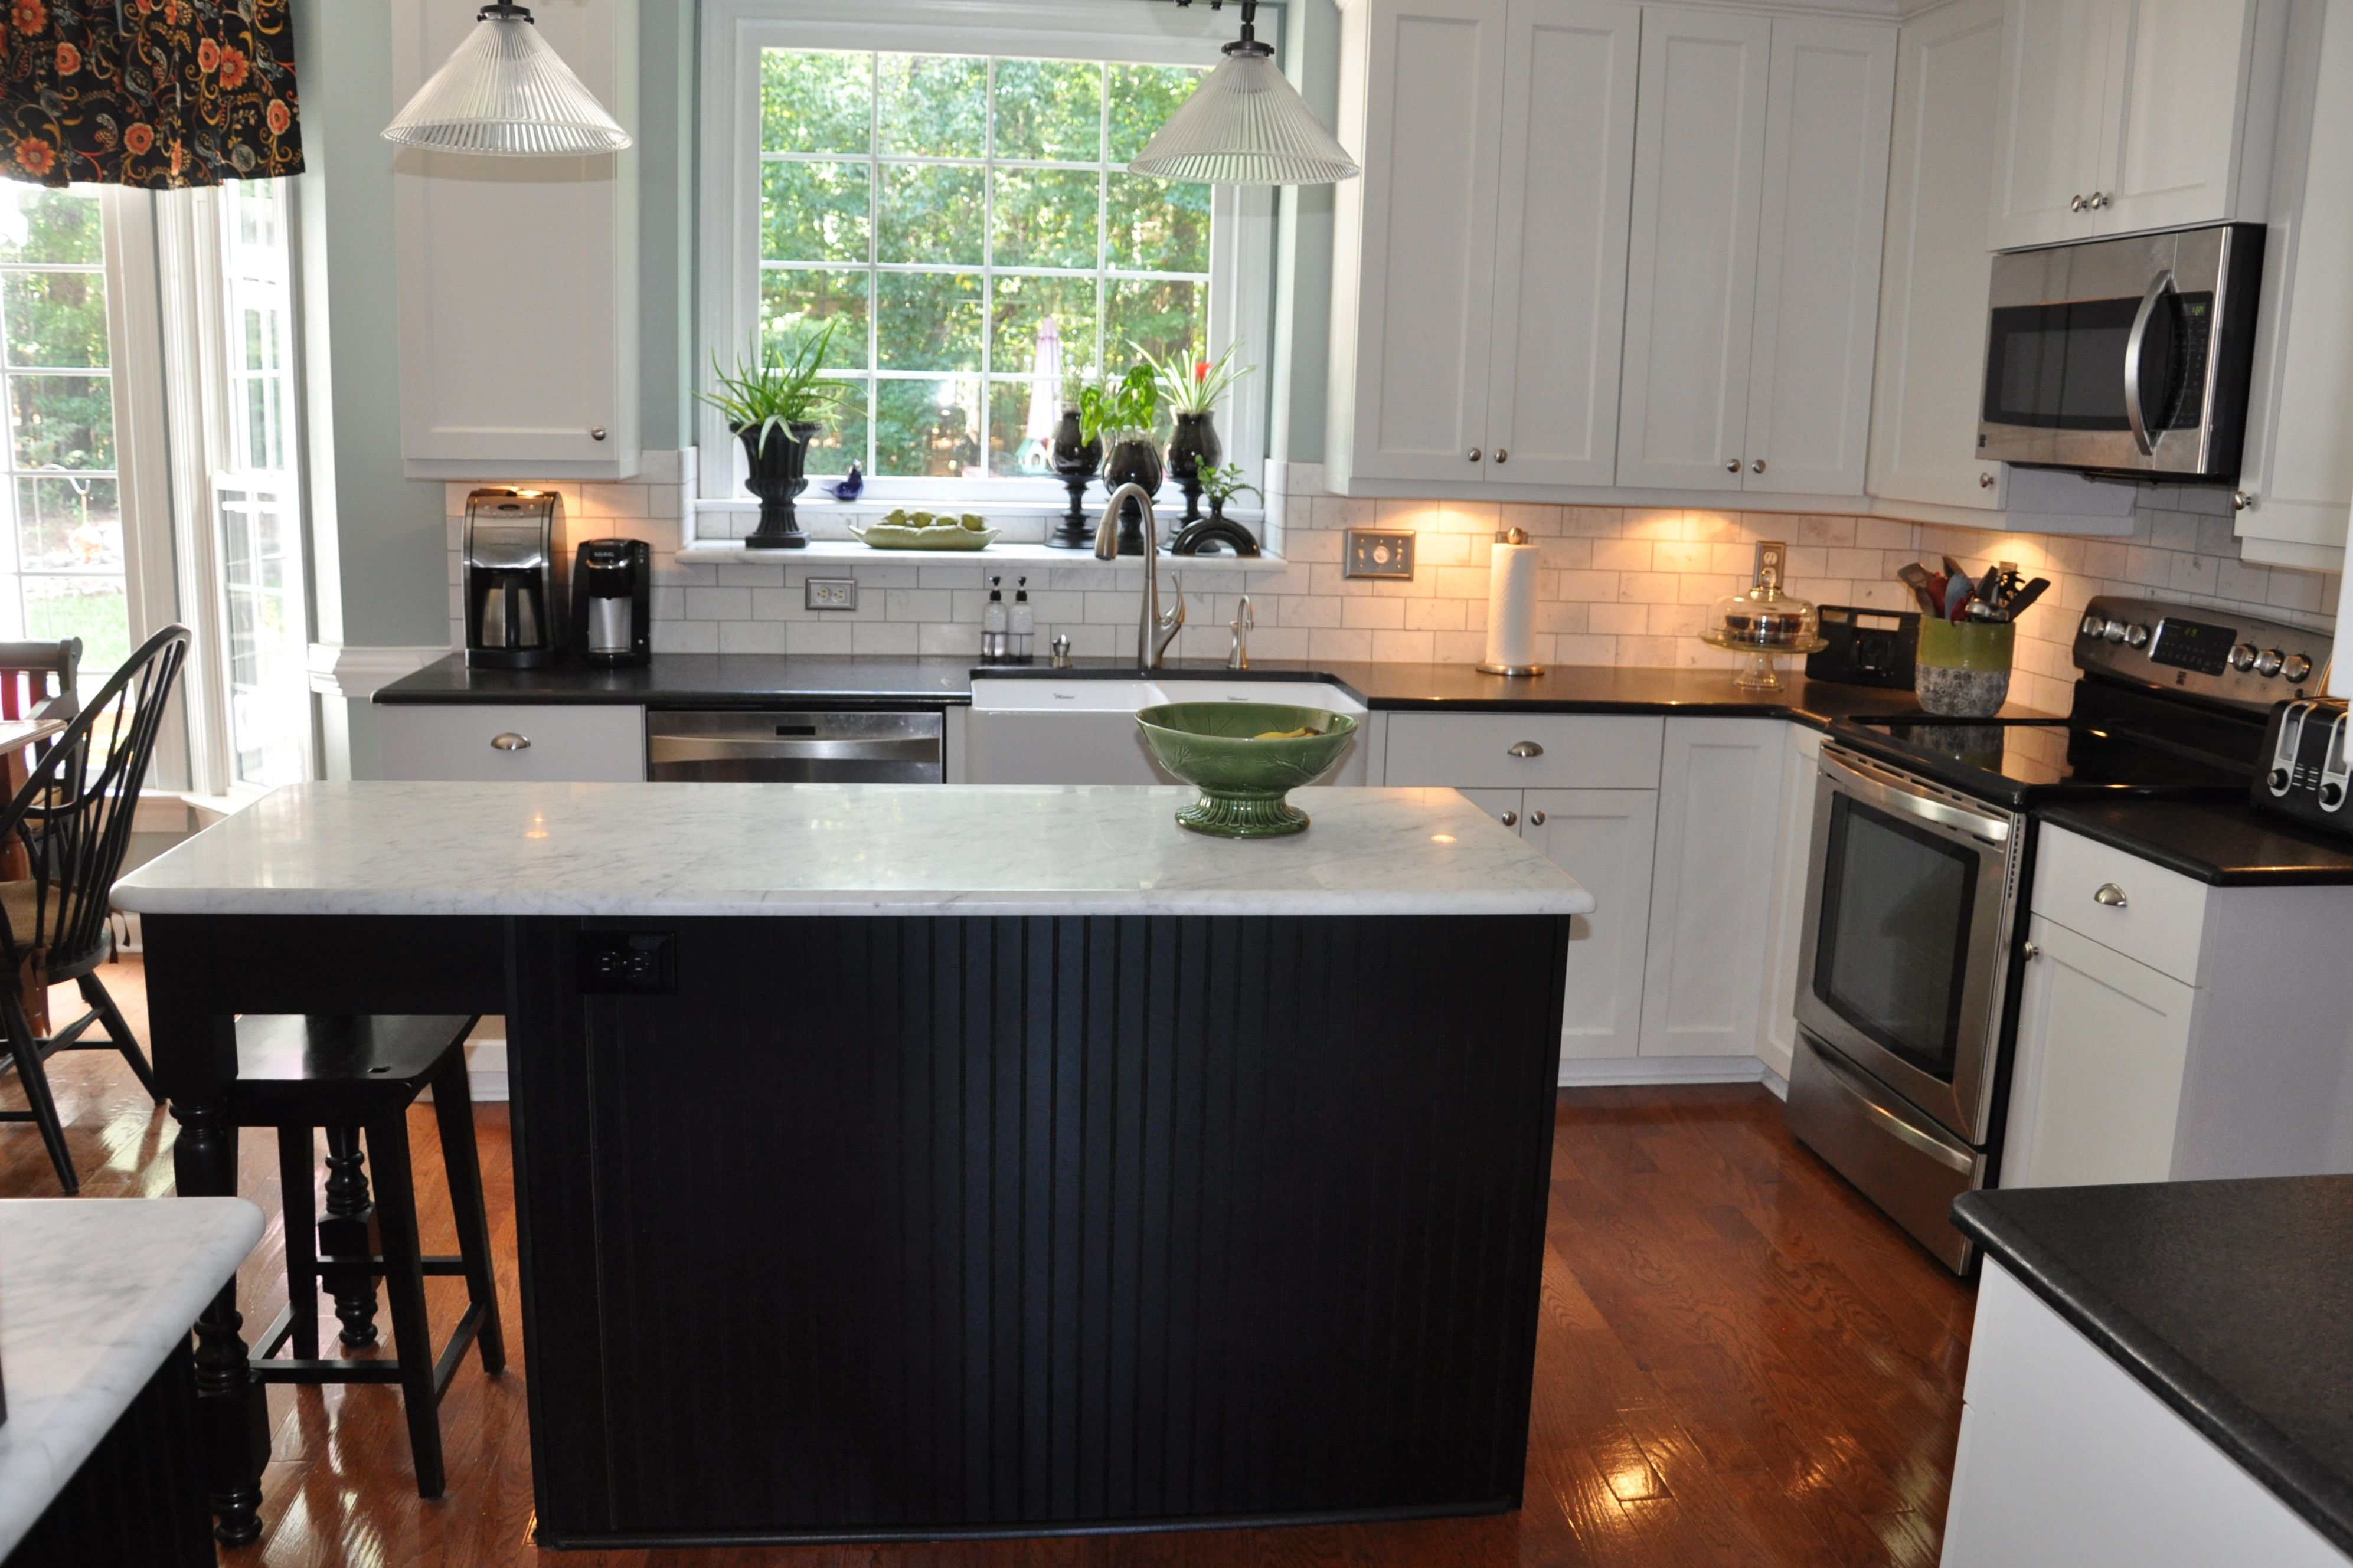 choice cost and countertops countertop size granite classic of carrara kitchen black full white laminate a marble for quartz colors any backsplash